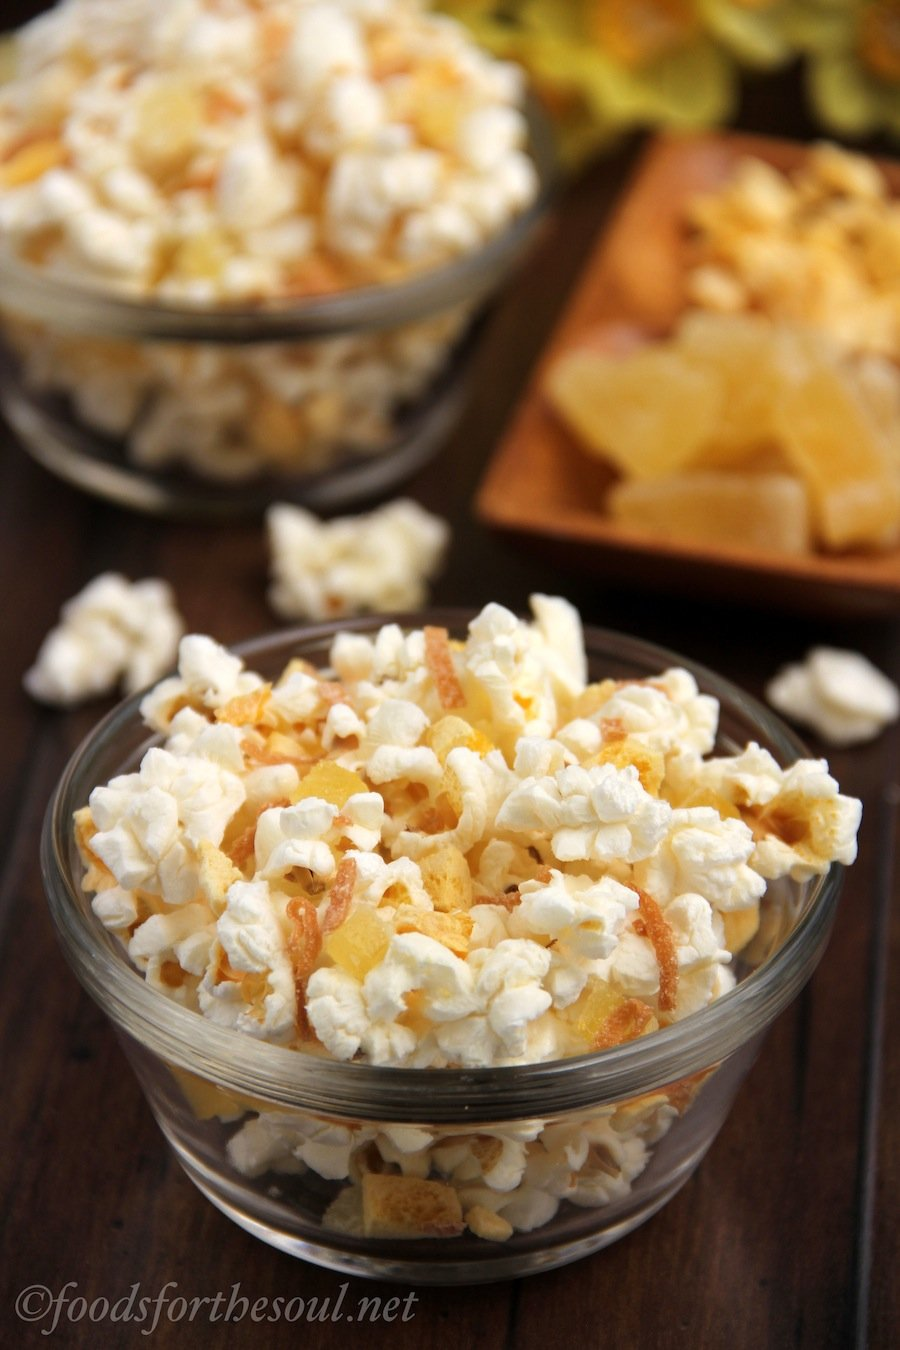 Tropical Popcorn Snack Mix | by Foods for the Soul {foodsforthesoul.net}